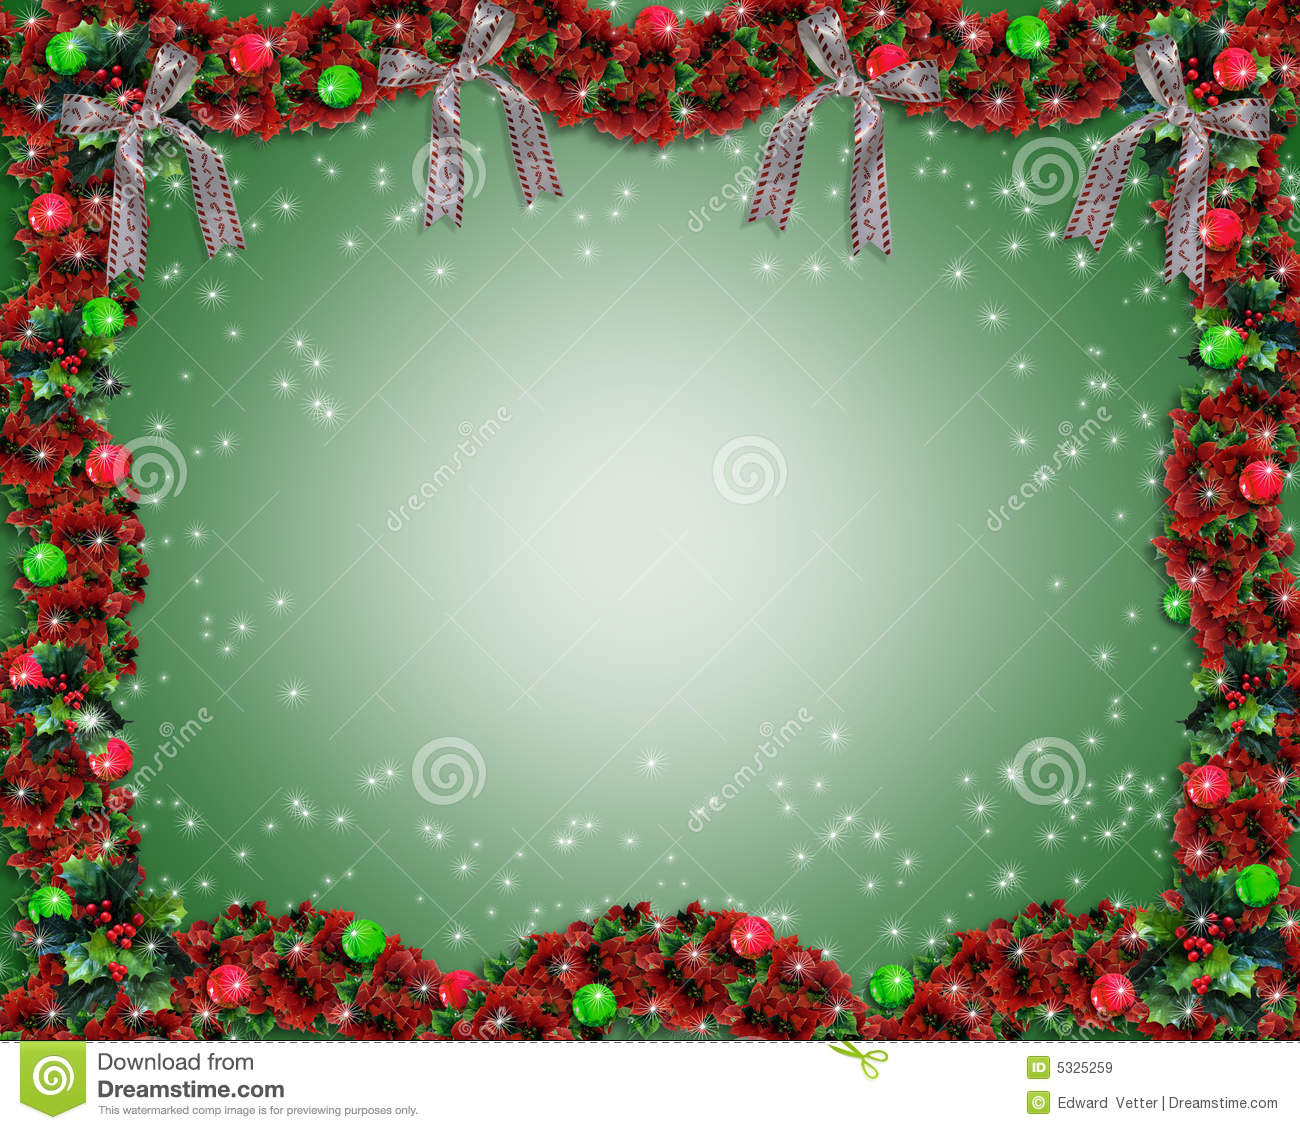 Christmas garland background or border stock illustration